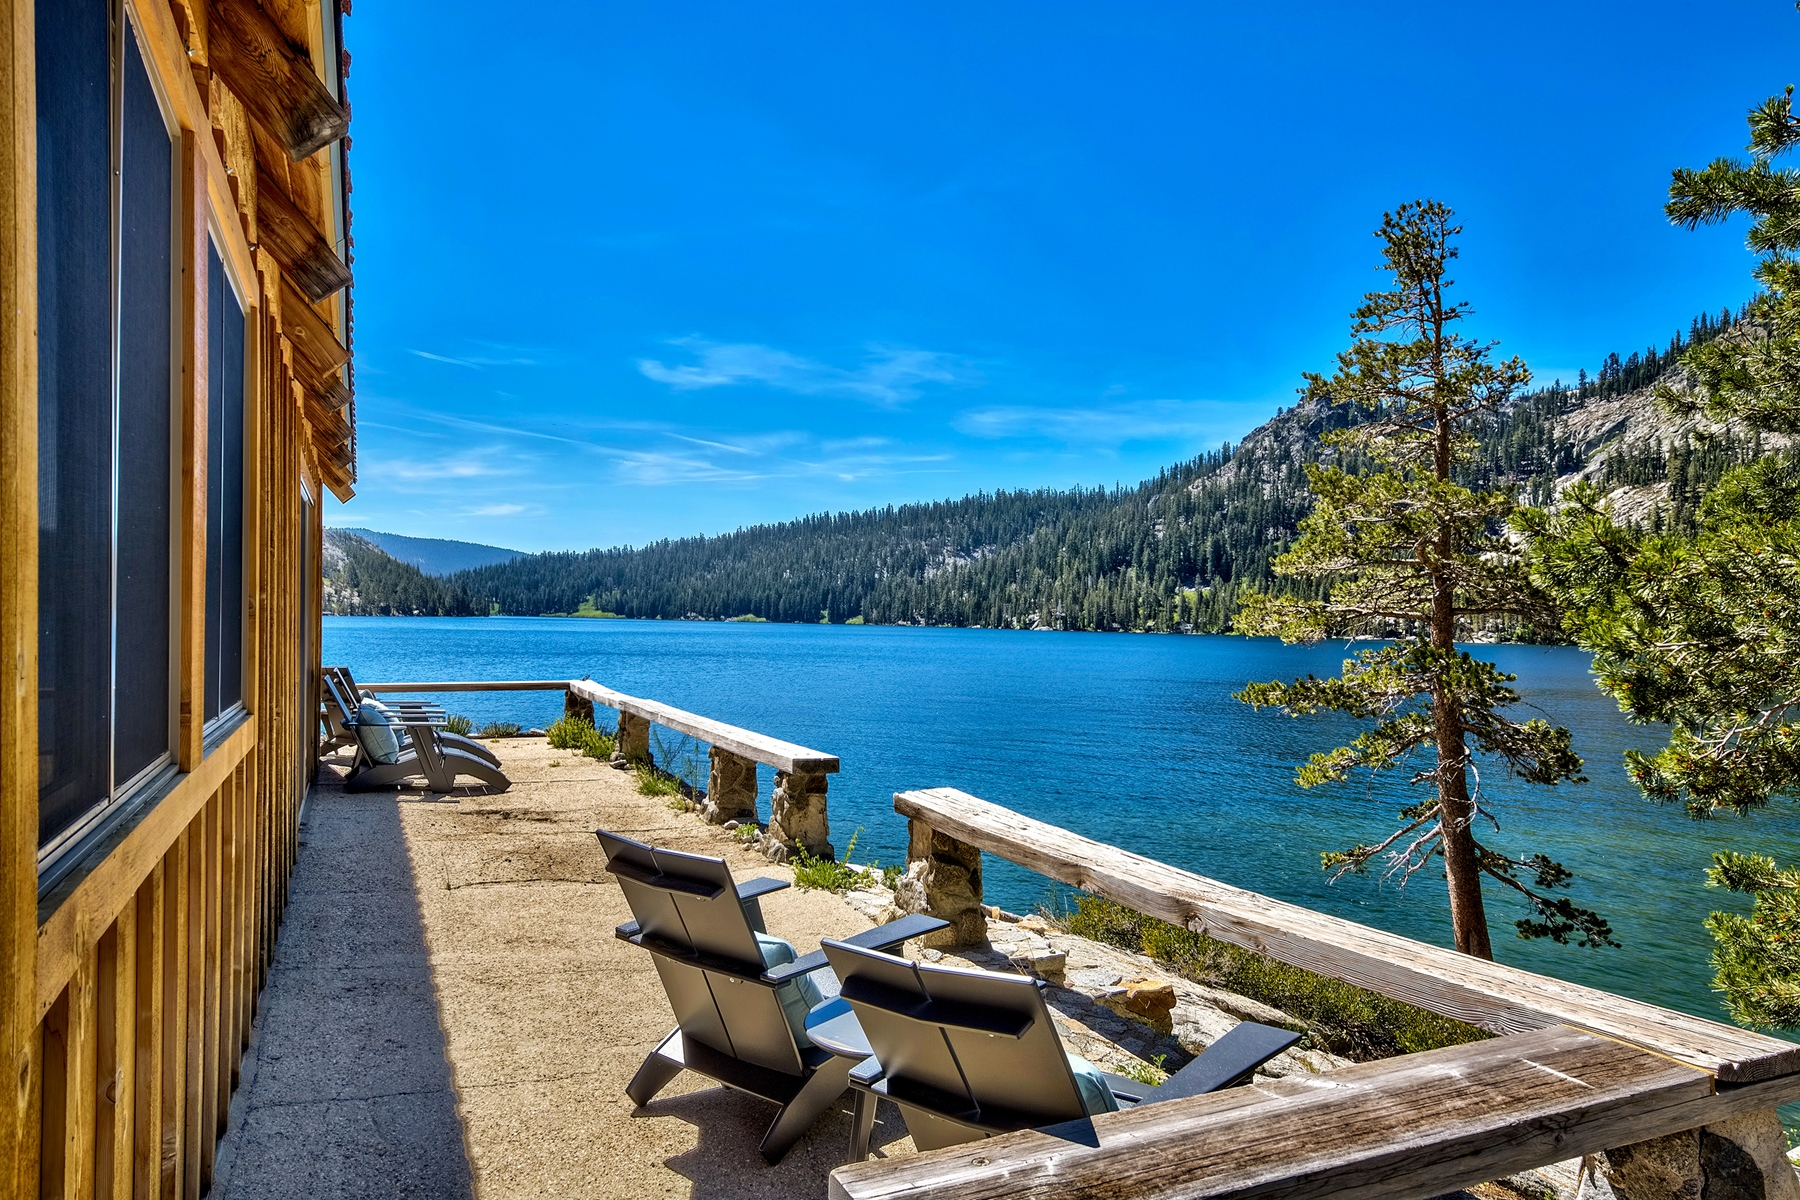 Single Family Homes for Active at Mermaid Cove, Lot 17,Lower Echo Lake, Echo Lake, CA 95721 Mermaid Cove, Lot 17 Lower Echo Lake Echo Lake, California 95721 United States